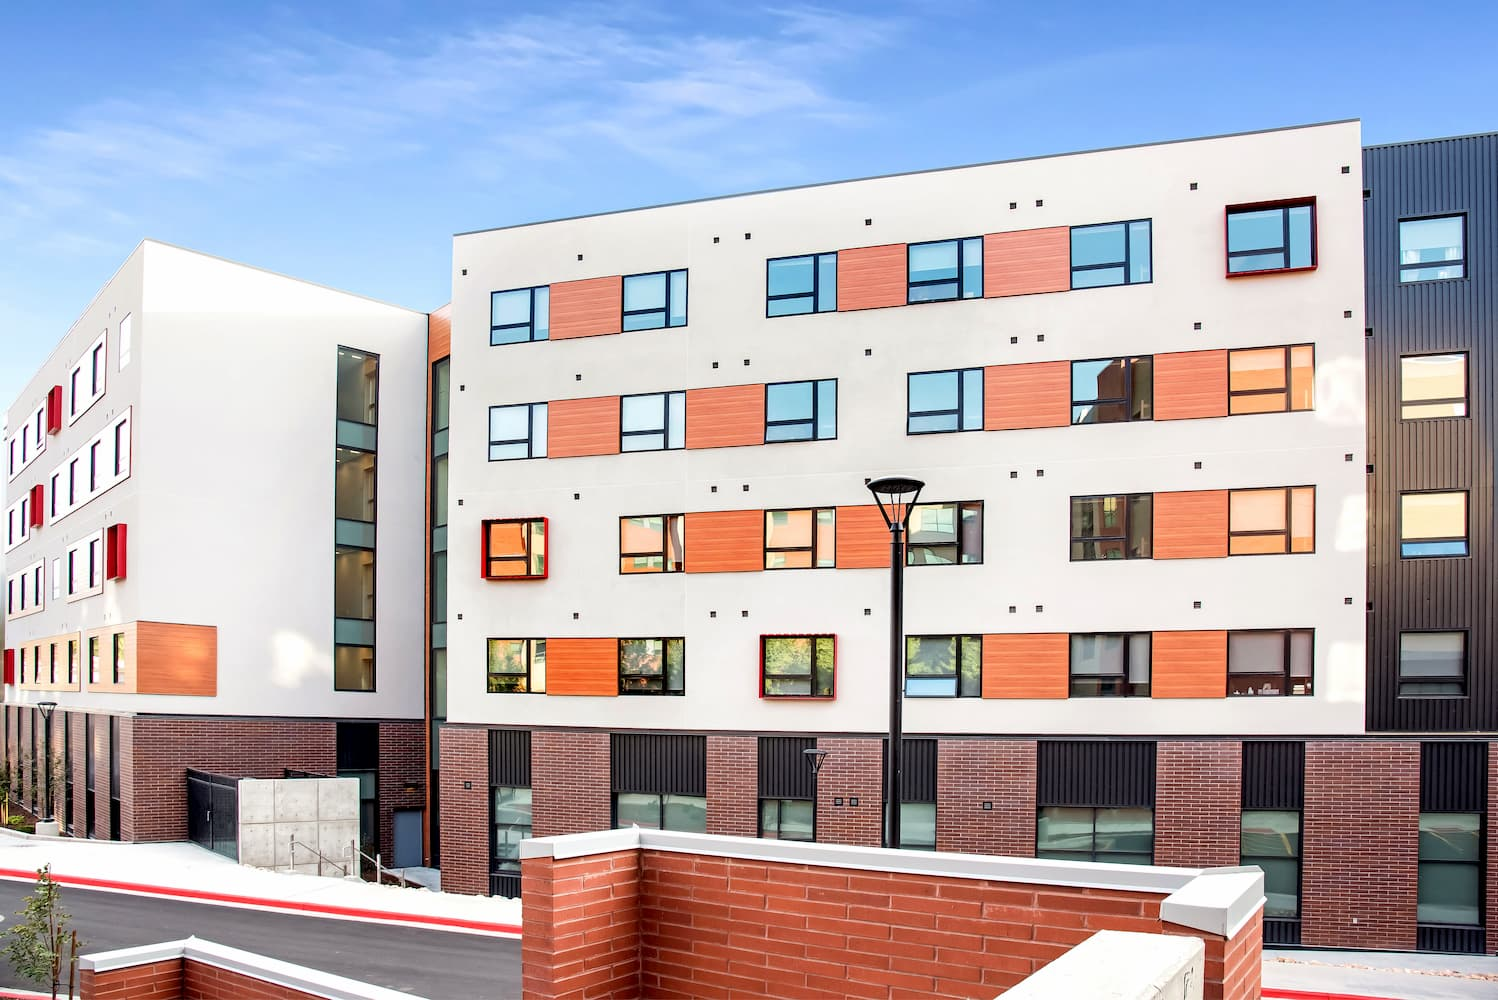 View of exterior windows of University of Utah student housing